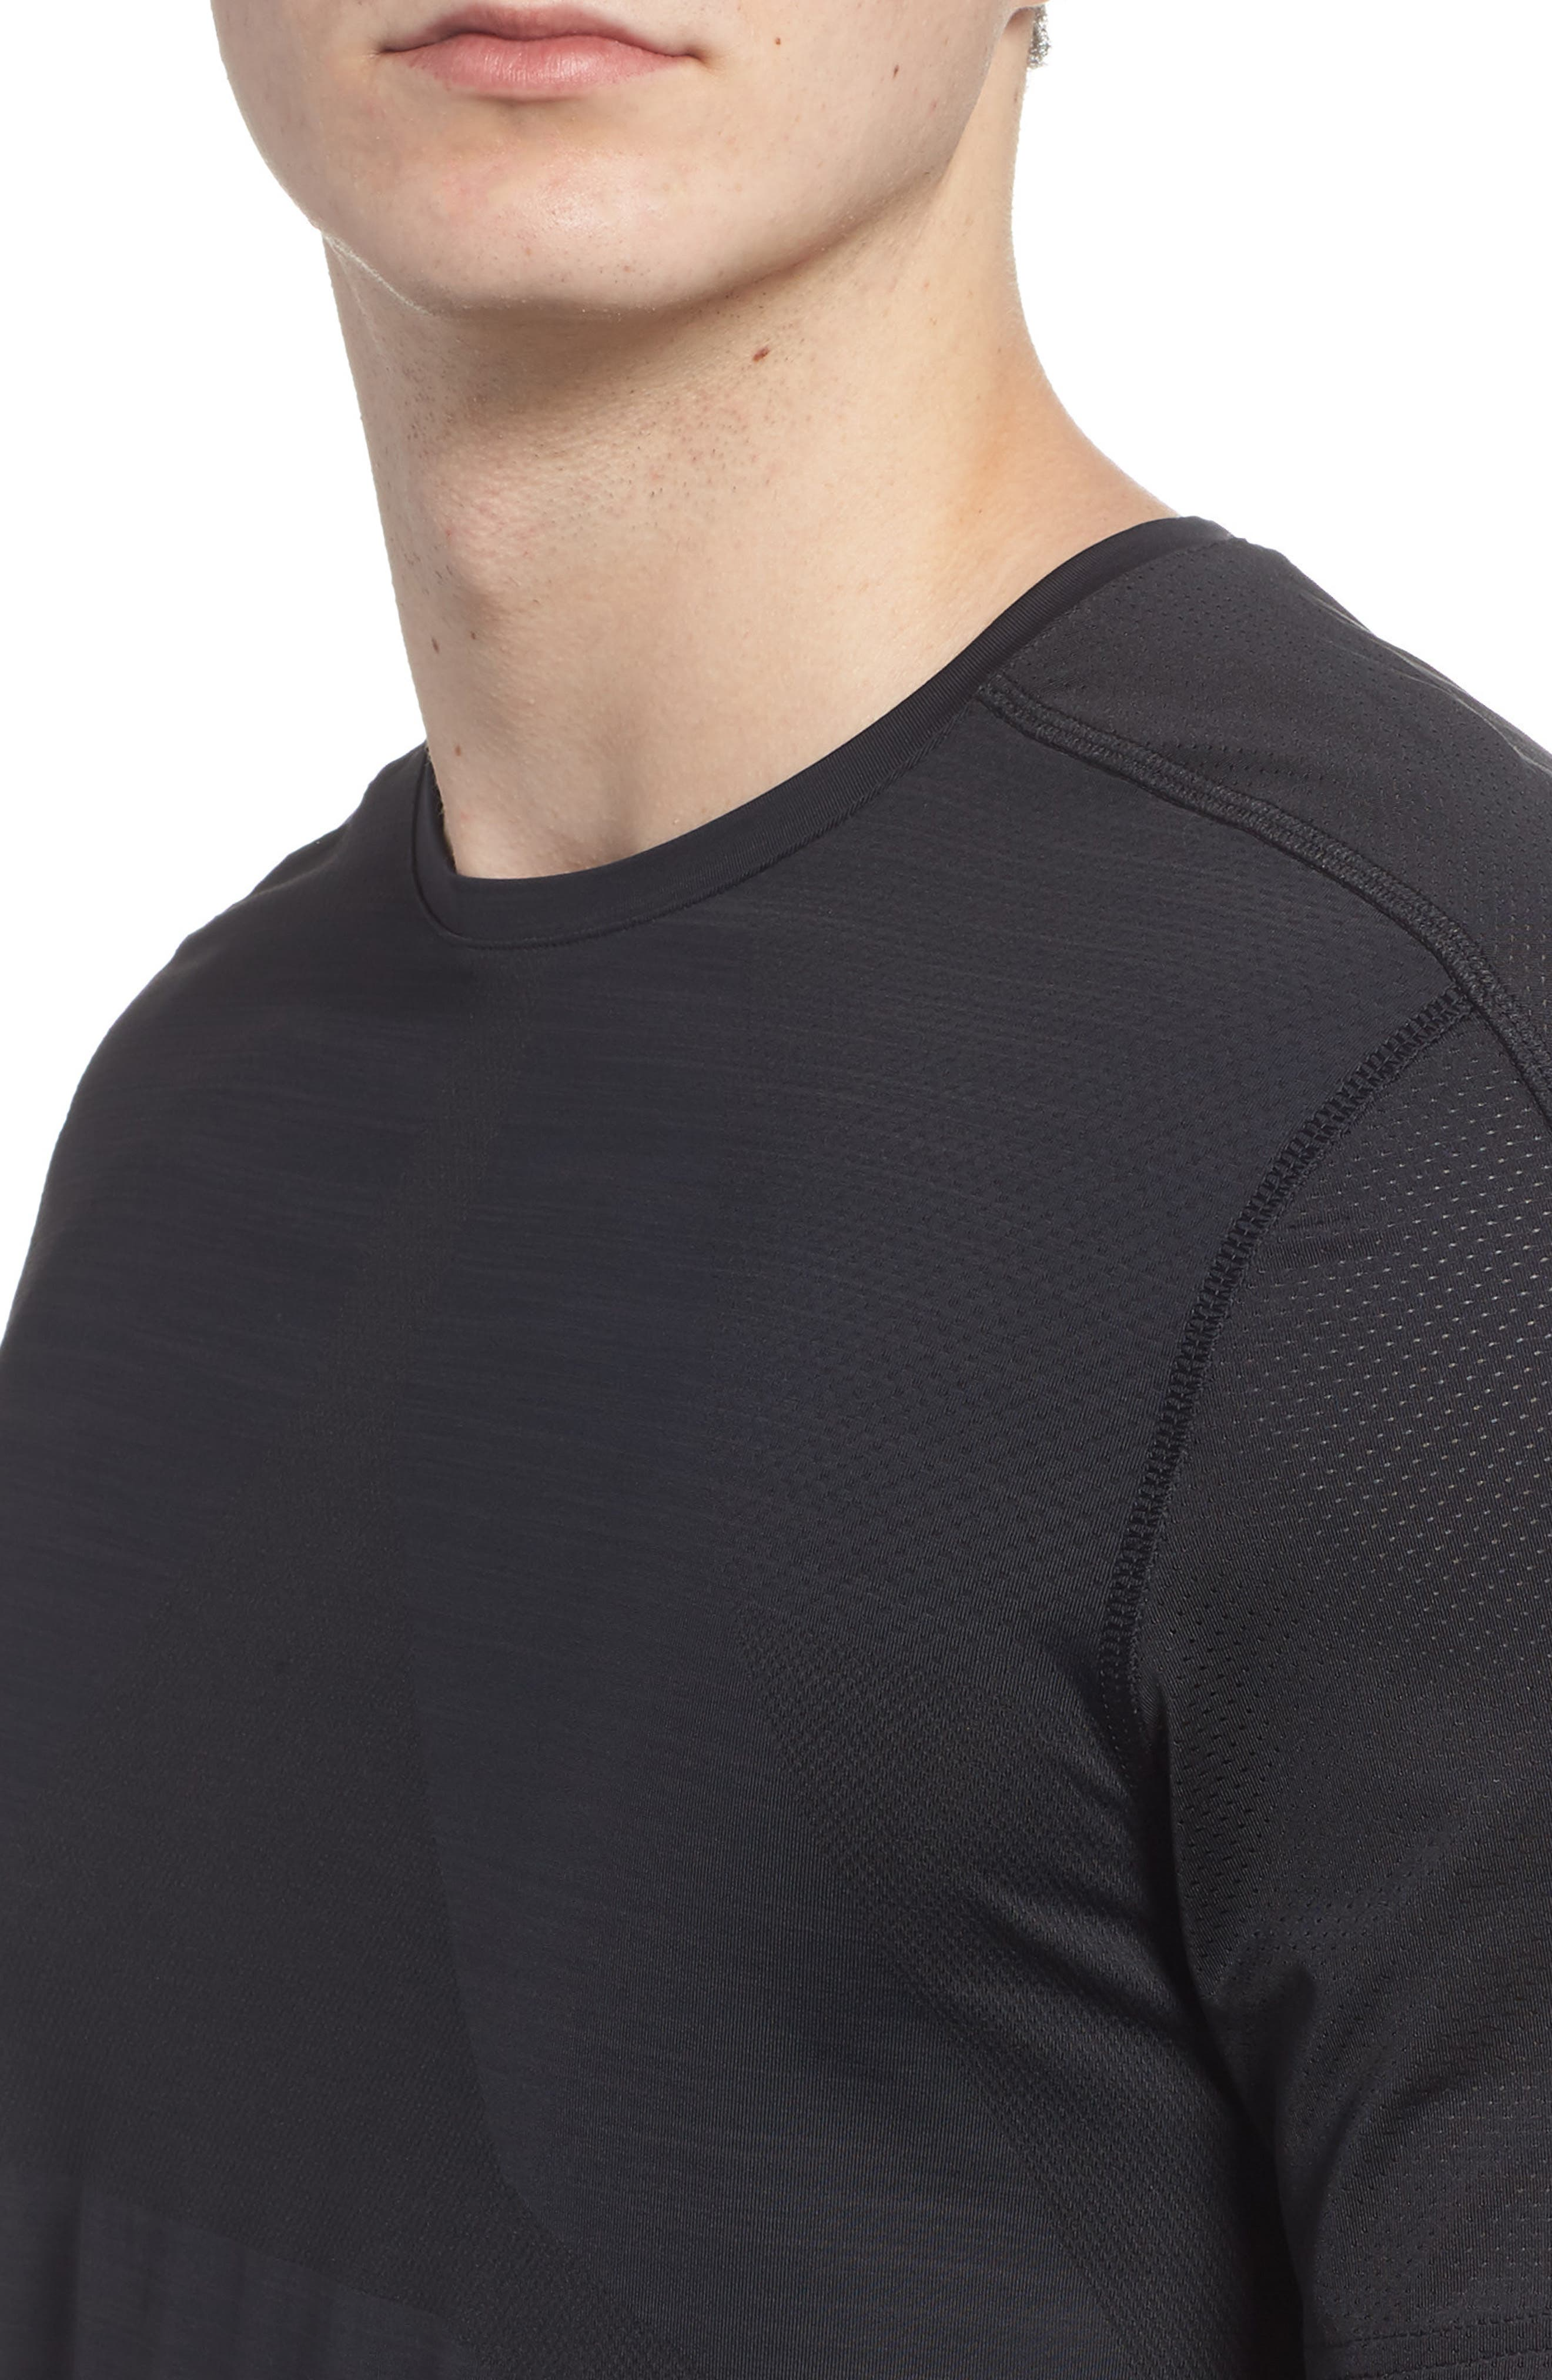 ACTIVCHILL Vent Move Crewneck T-Shirt,                             Alternate thumbnail 4, color,                             Black